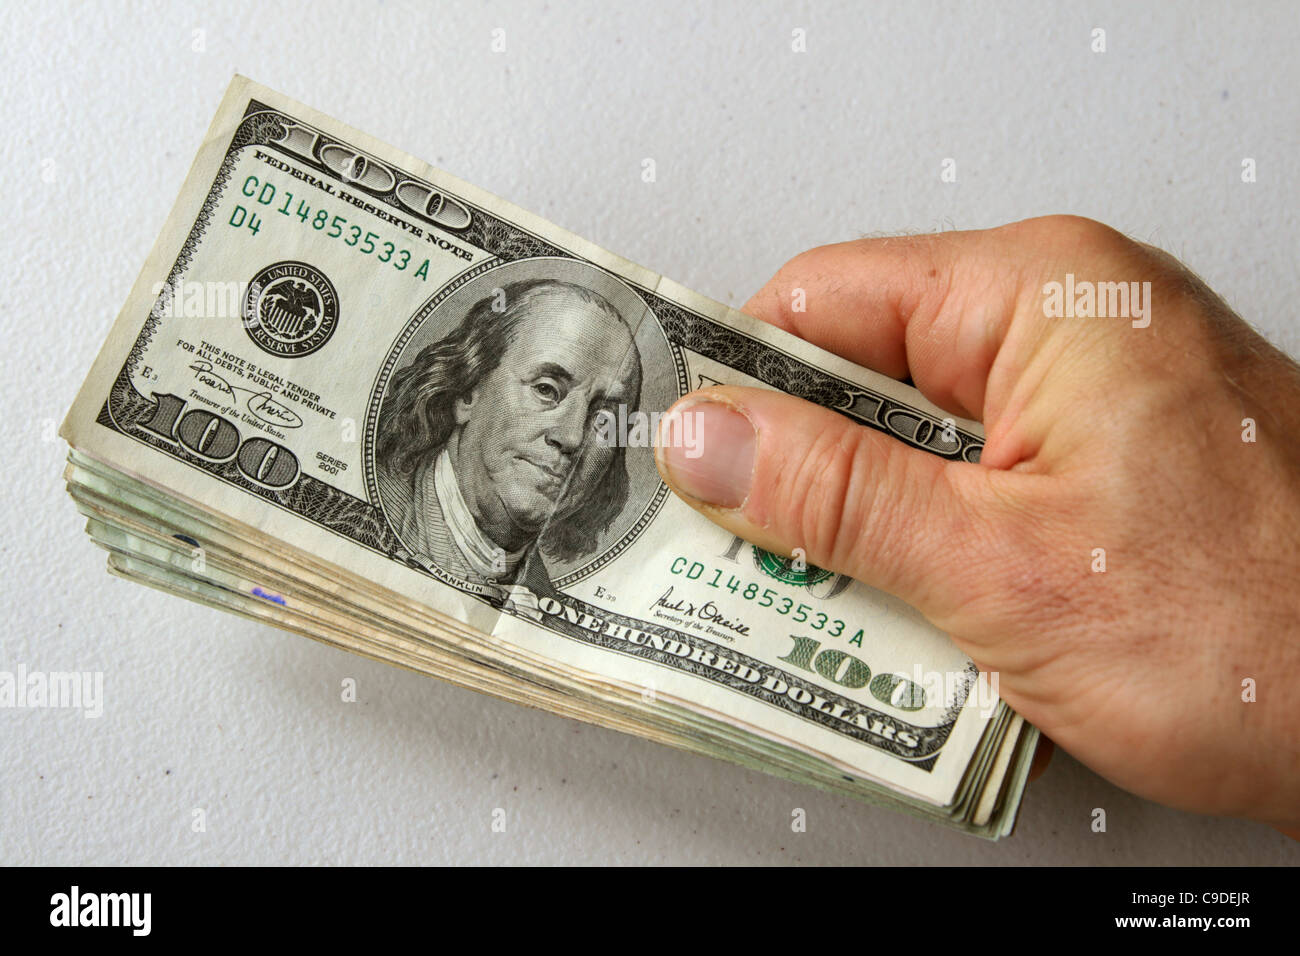 Man's hand holding stack of US money with 100 dollar bill on top - Stock Image